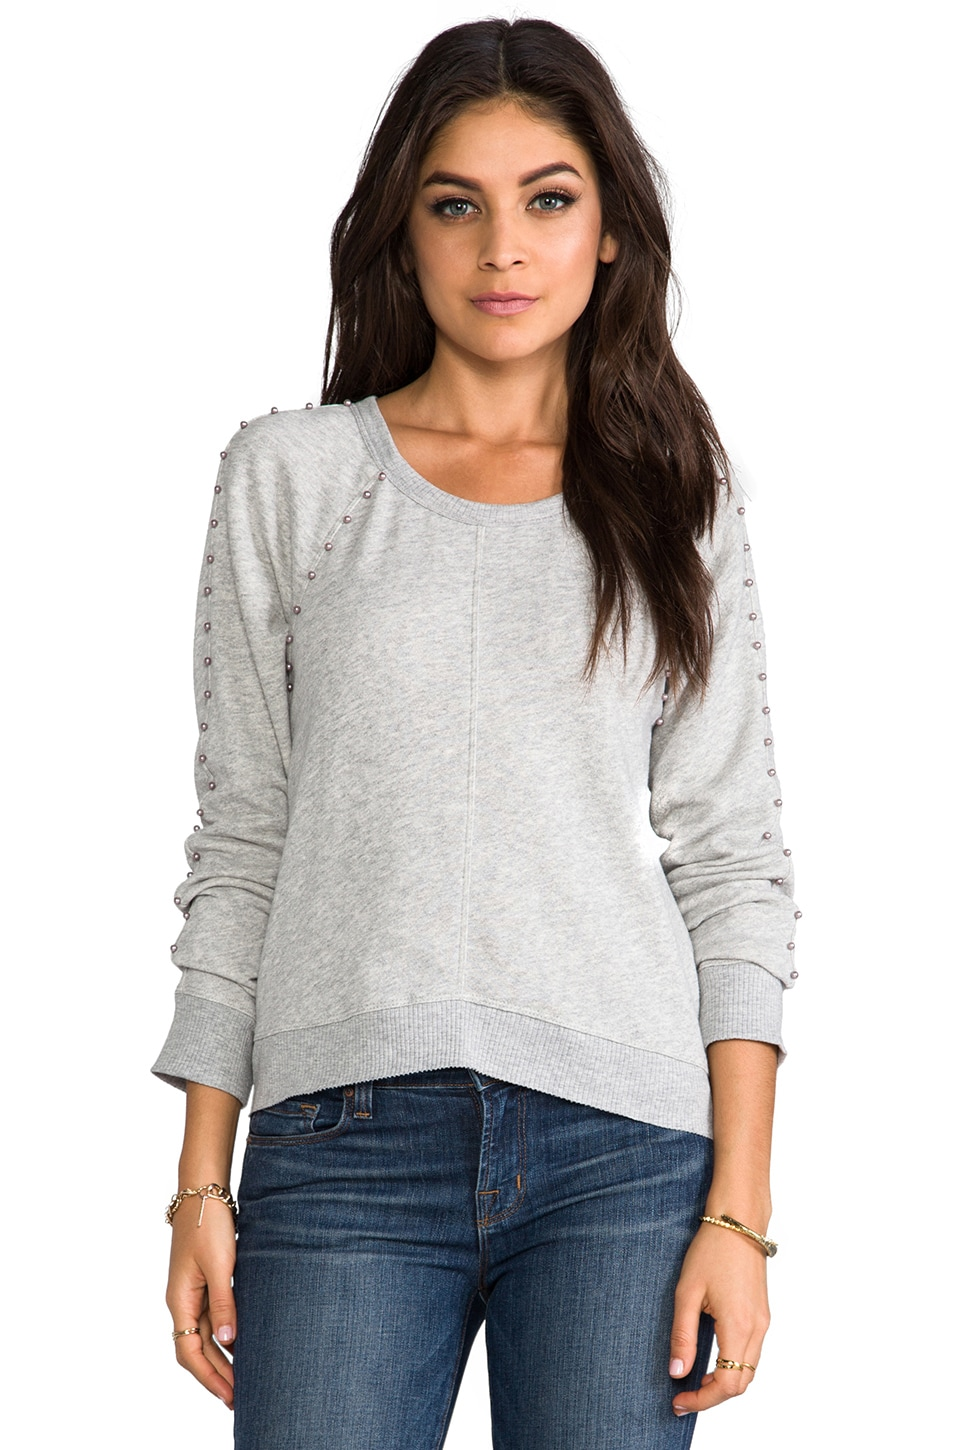 Wilt Pearl Crop Sweatshirt in Grey Heather